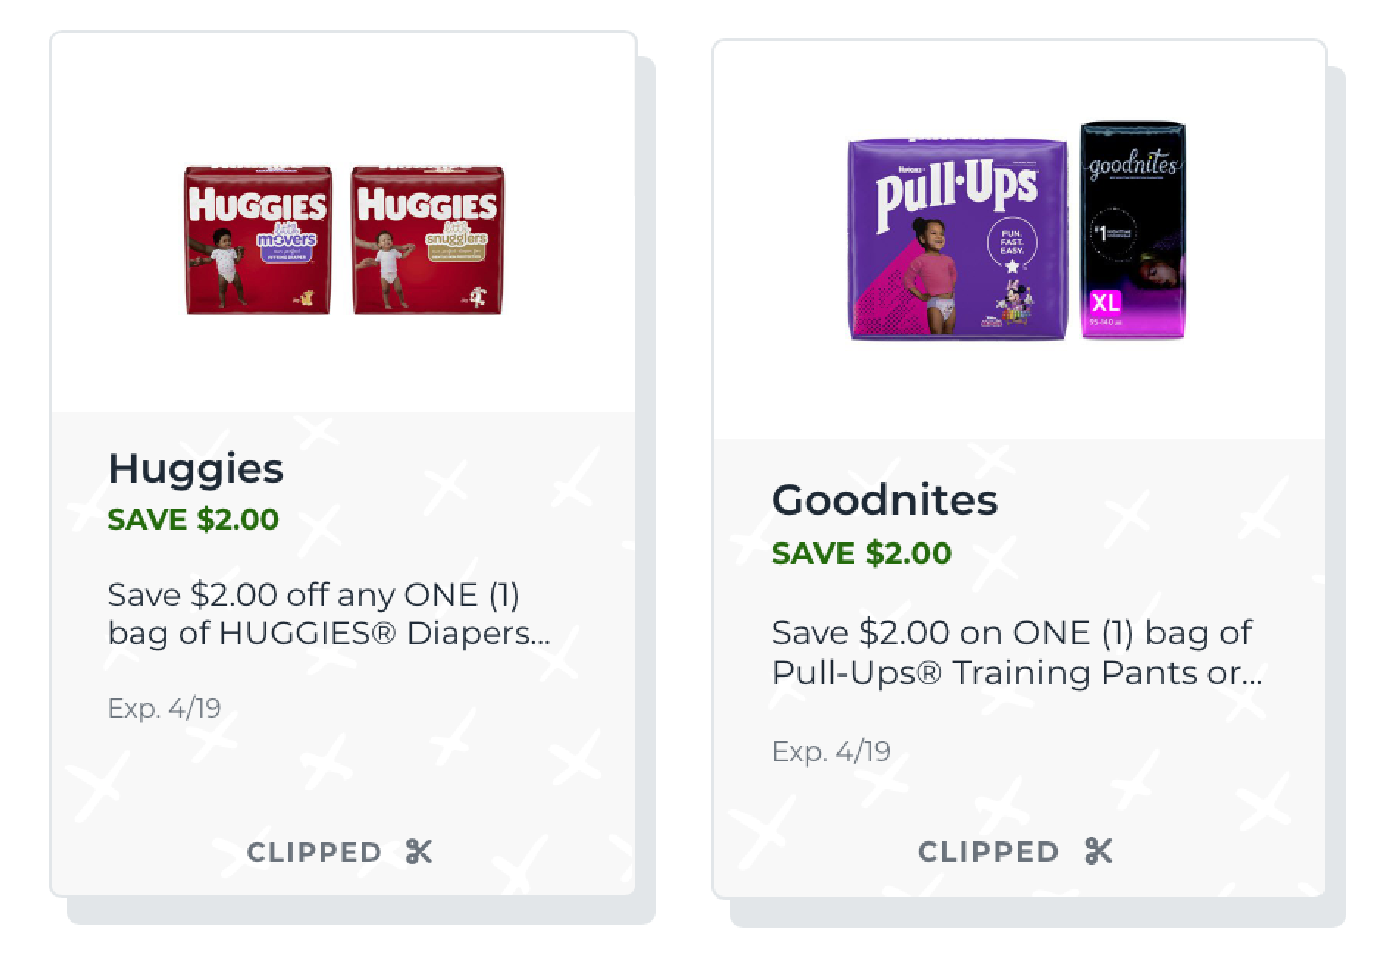 Can't-Miss Deal On Huggies Diapers And Pull-Ups This Week At Publix - Diapers As Low As $2.99! on I Heart Publix